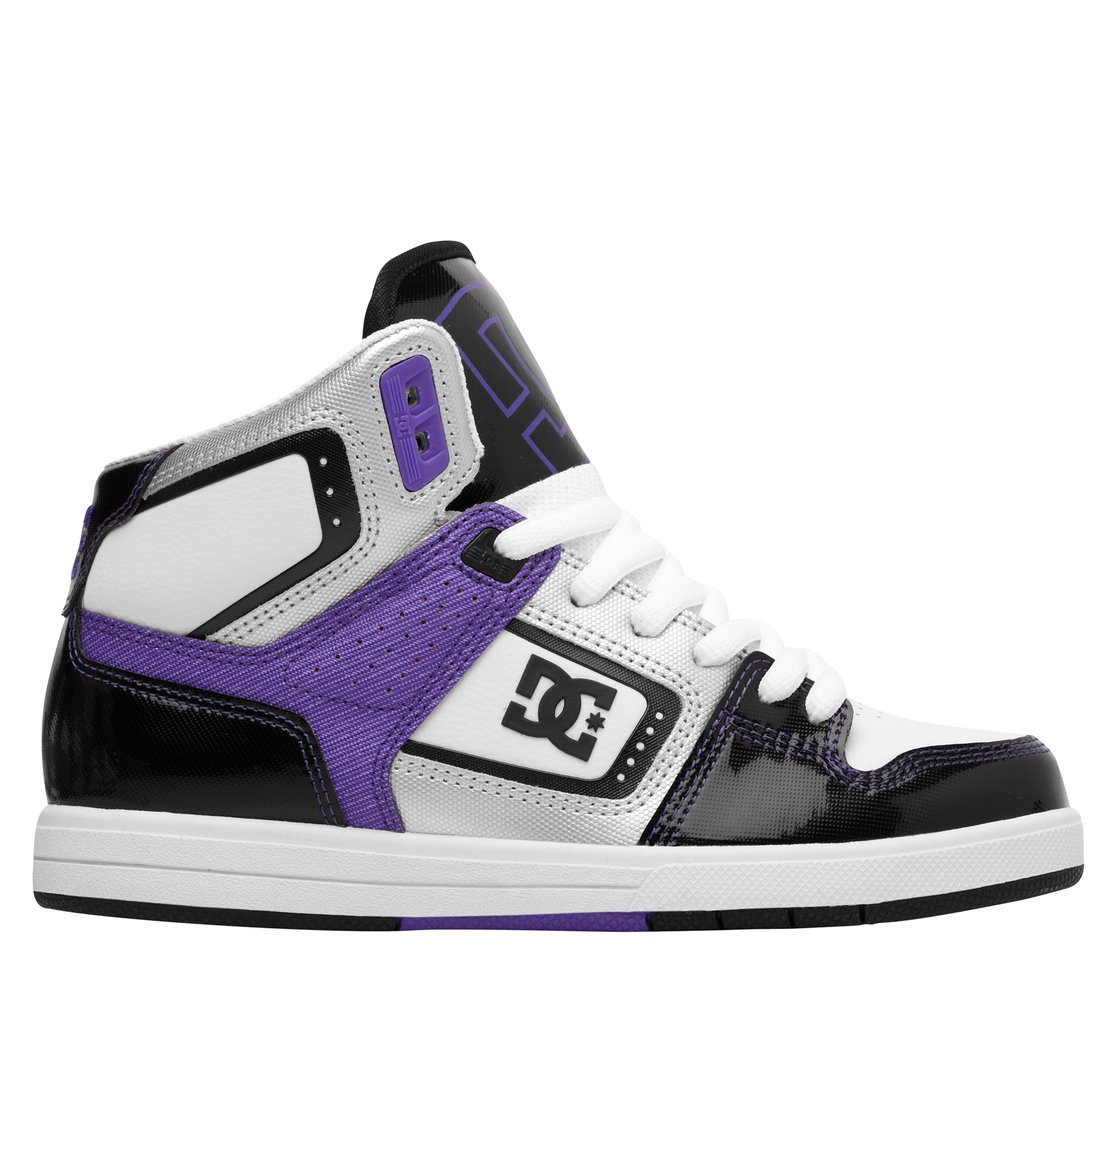 2c4ae16da76 0 Women's Destroyer HI Shoes 320306 DC Shoes